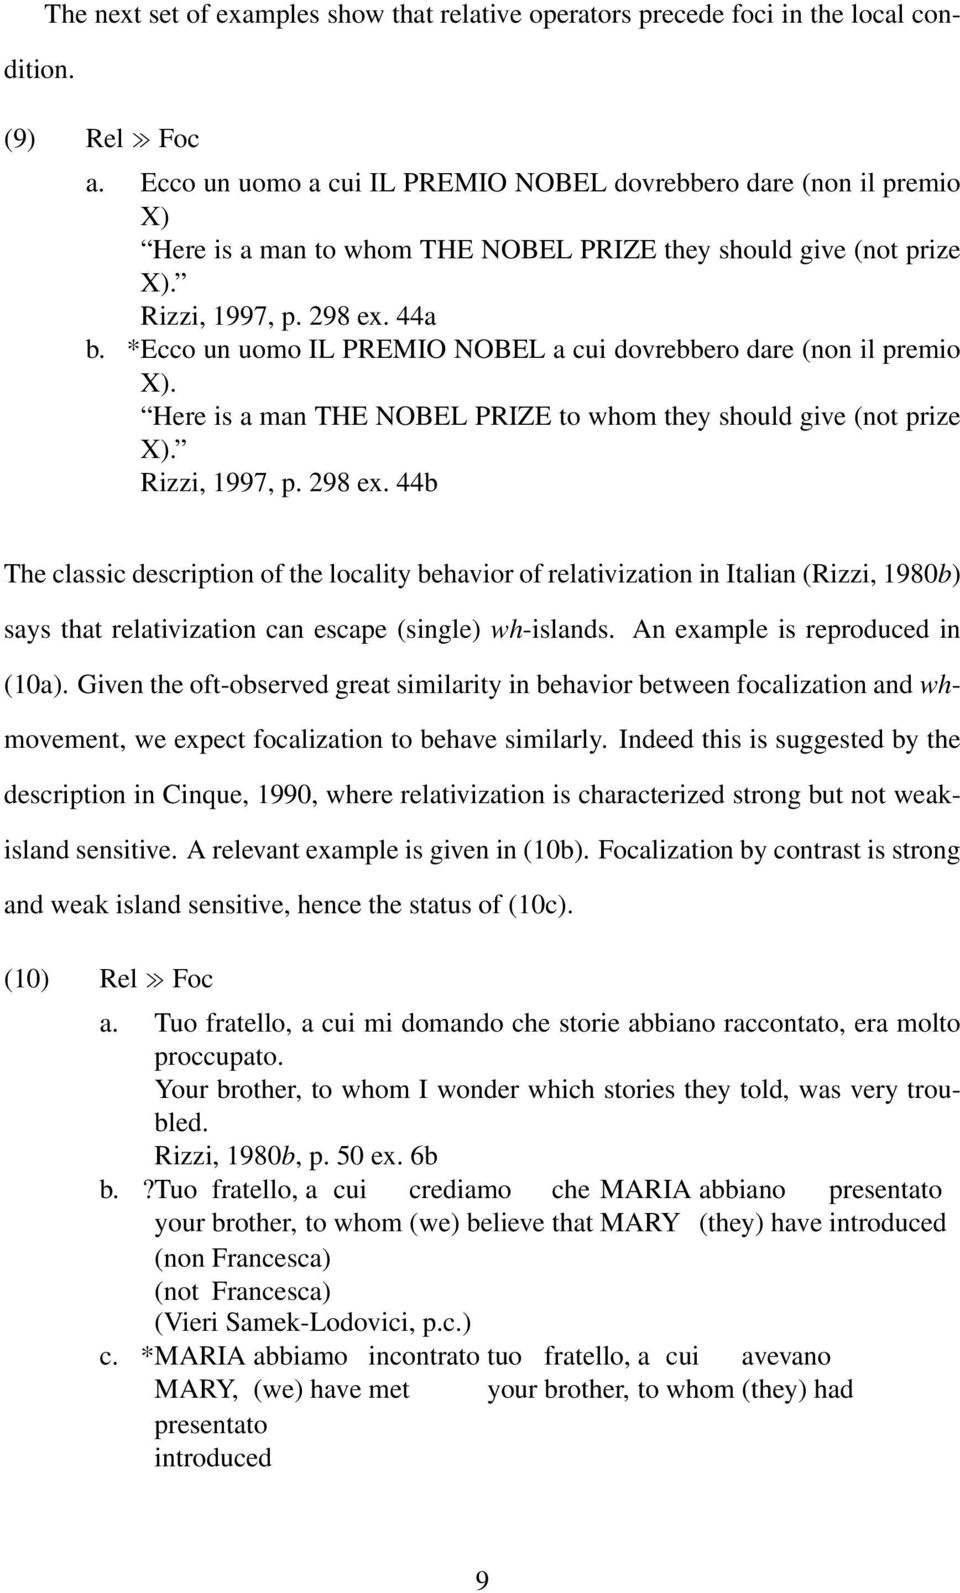 *Ecco un uomo IL PREMIO NOBEL a cui dovrebbero dare (non il premio X). Here is a man THE NOBEL PRIZE to whom they should give (not prize X). Rizzi, 1997, p. 298 ex.